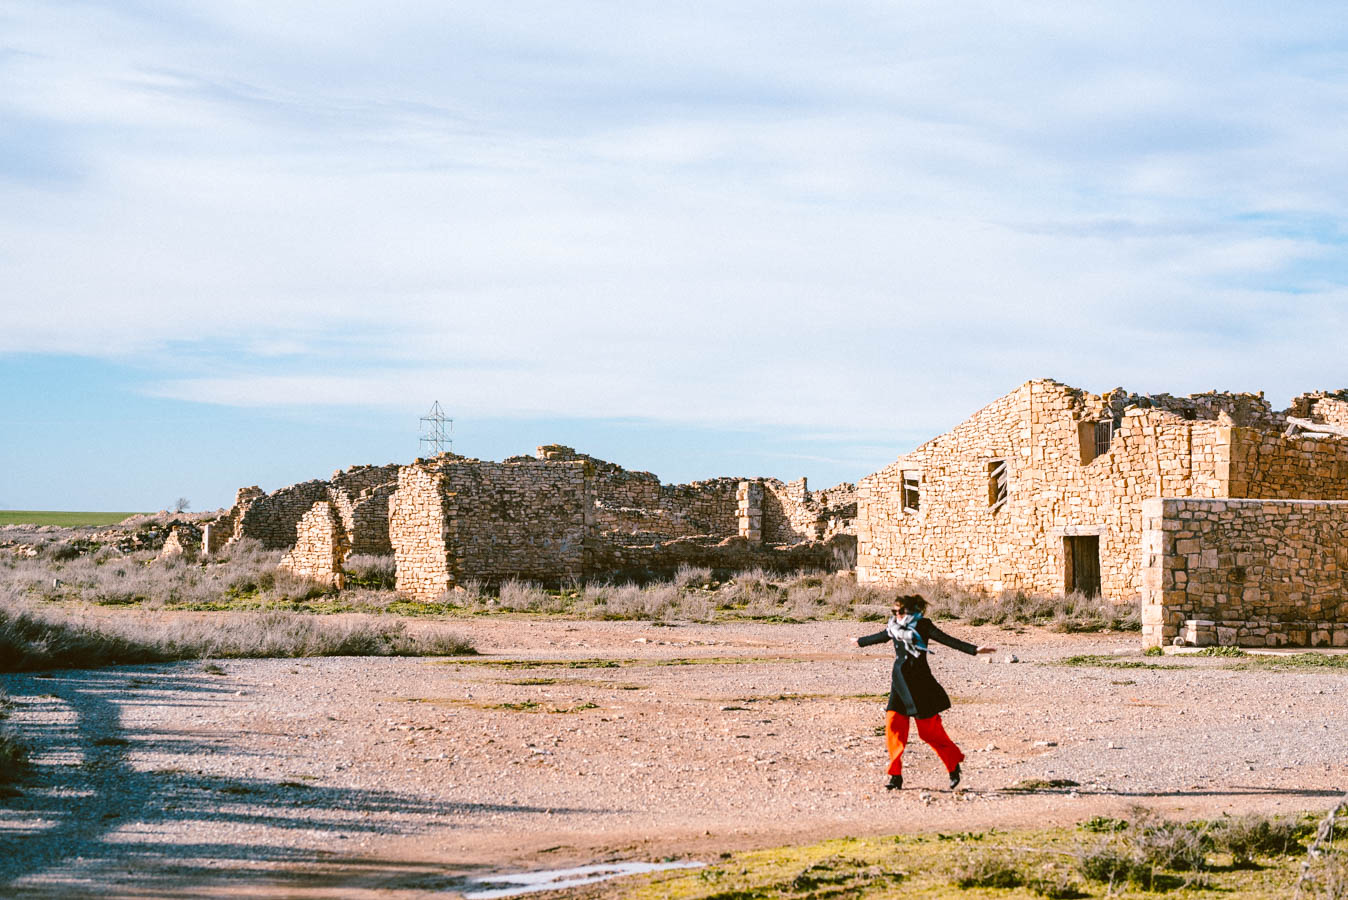 Cardial is a plague ghost town in the Spanish desert